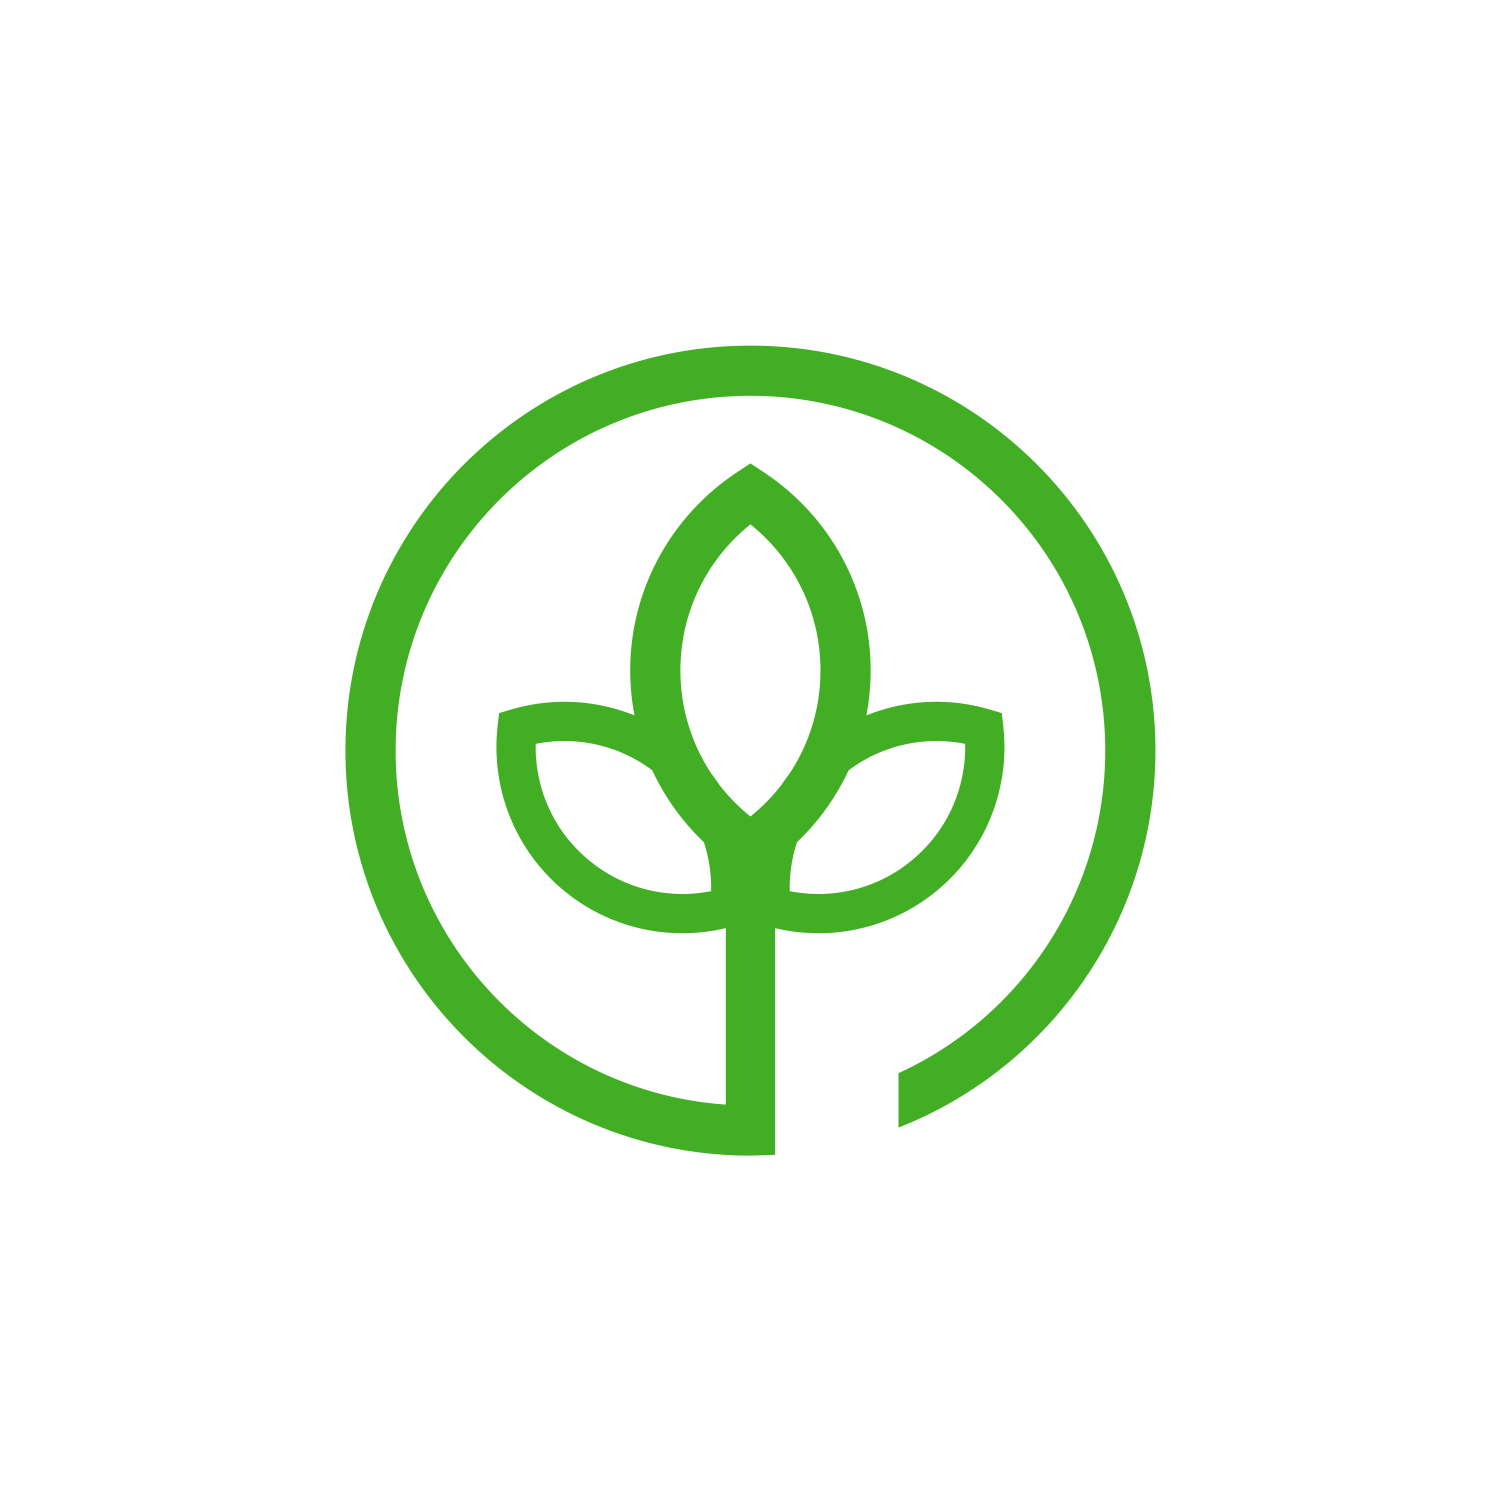 Design my logo and help me help others to a happy and sustainable life